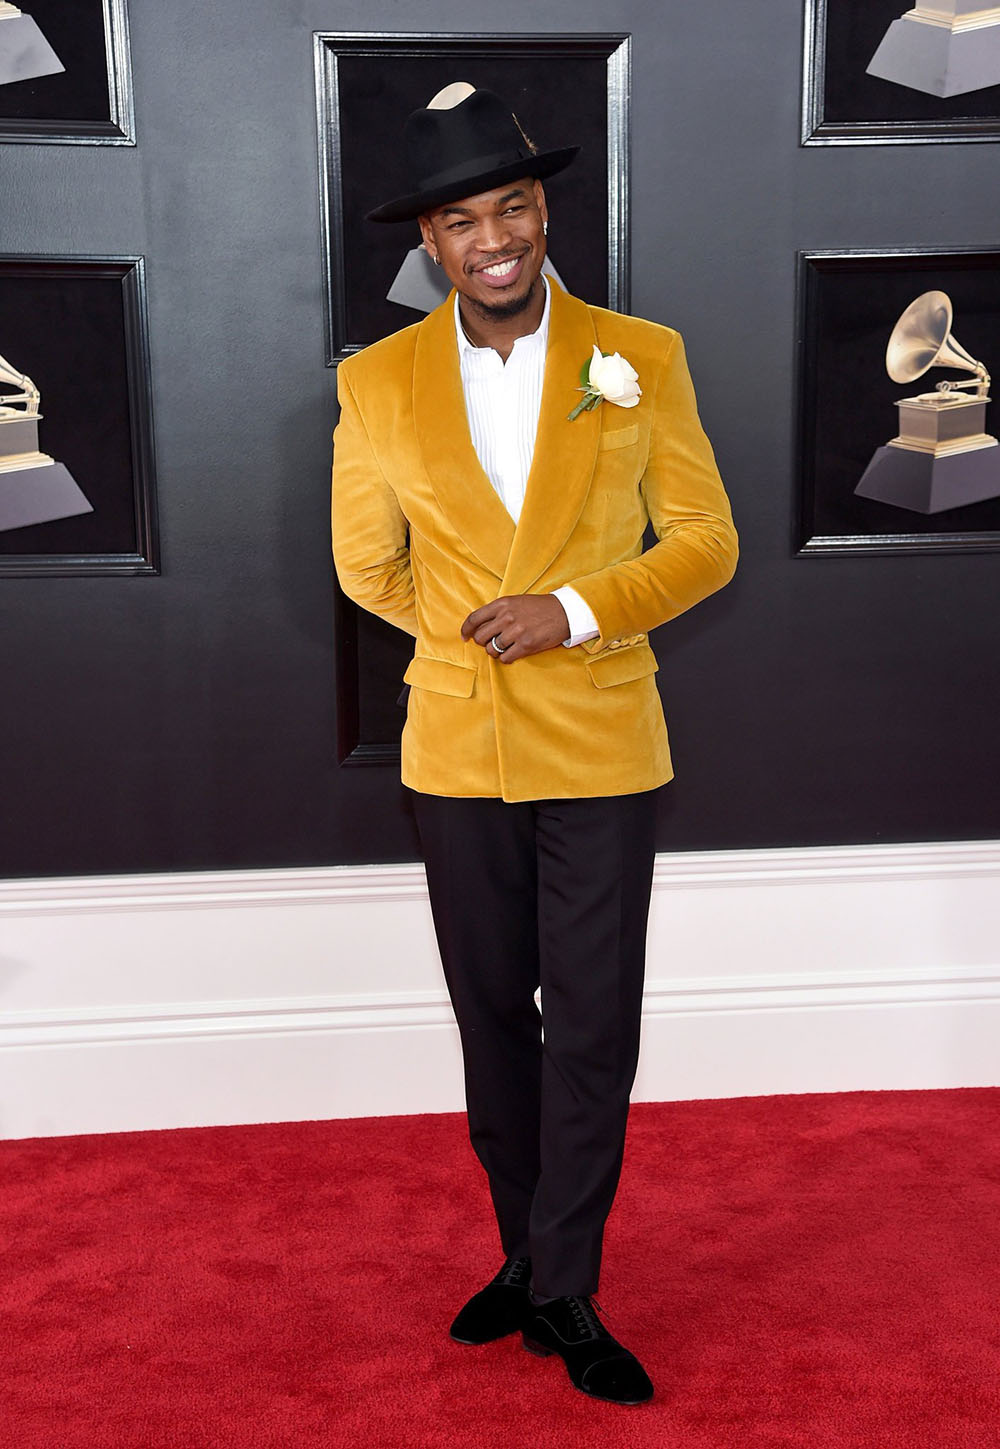 Neyo at the 2018 Grammy Awards. Best Dressed (Most Stylish) Men